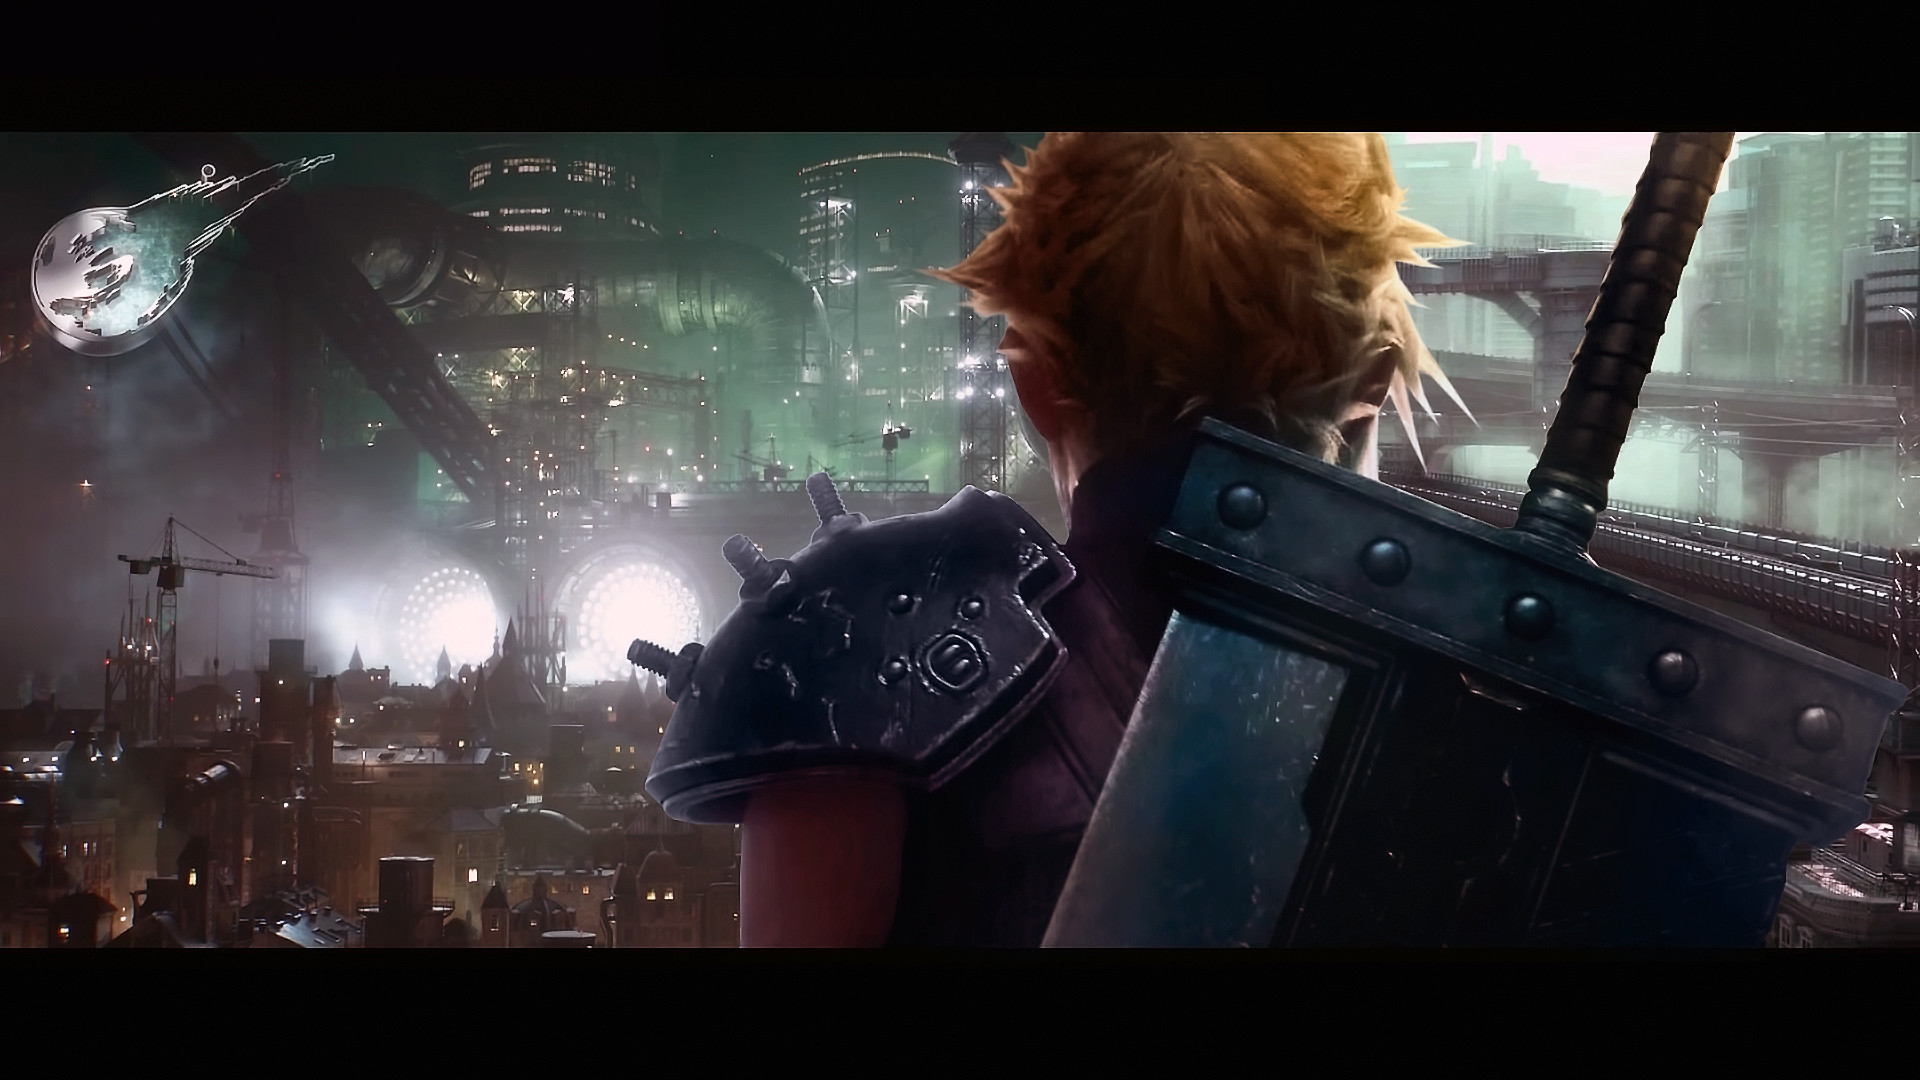 Final fantasy 7 remake wallpaper 84 images 1920x1080 final fantasy vii remake wallpaper altavistaventures Gallery